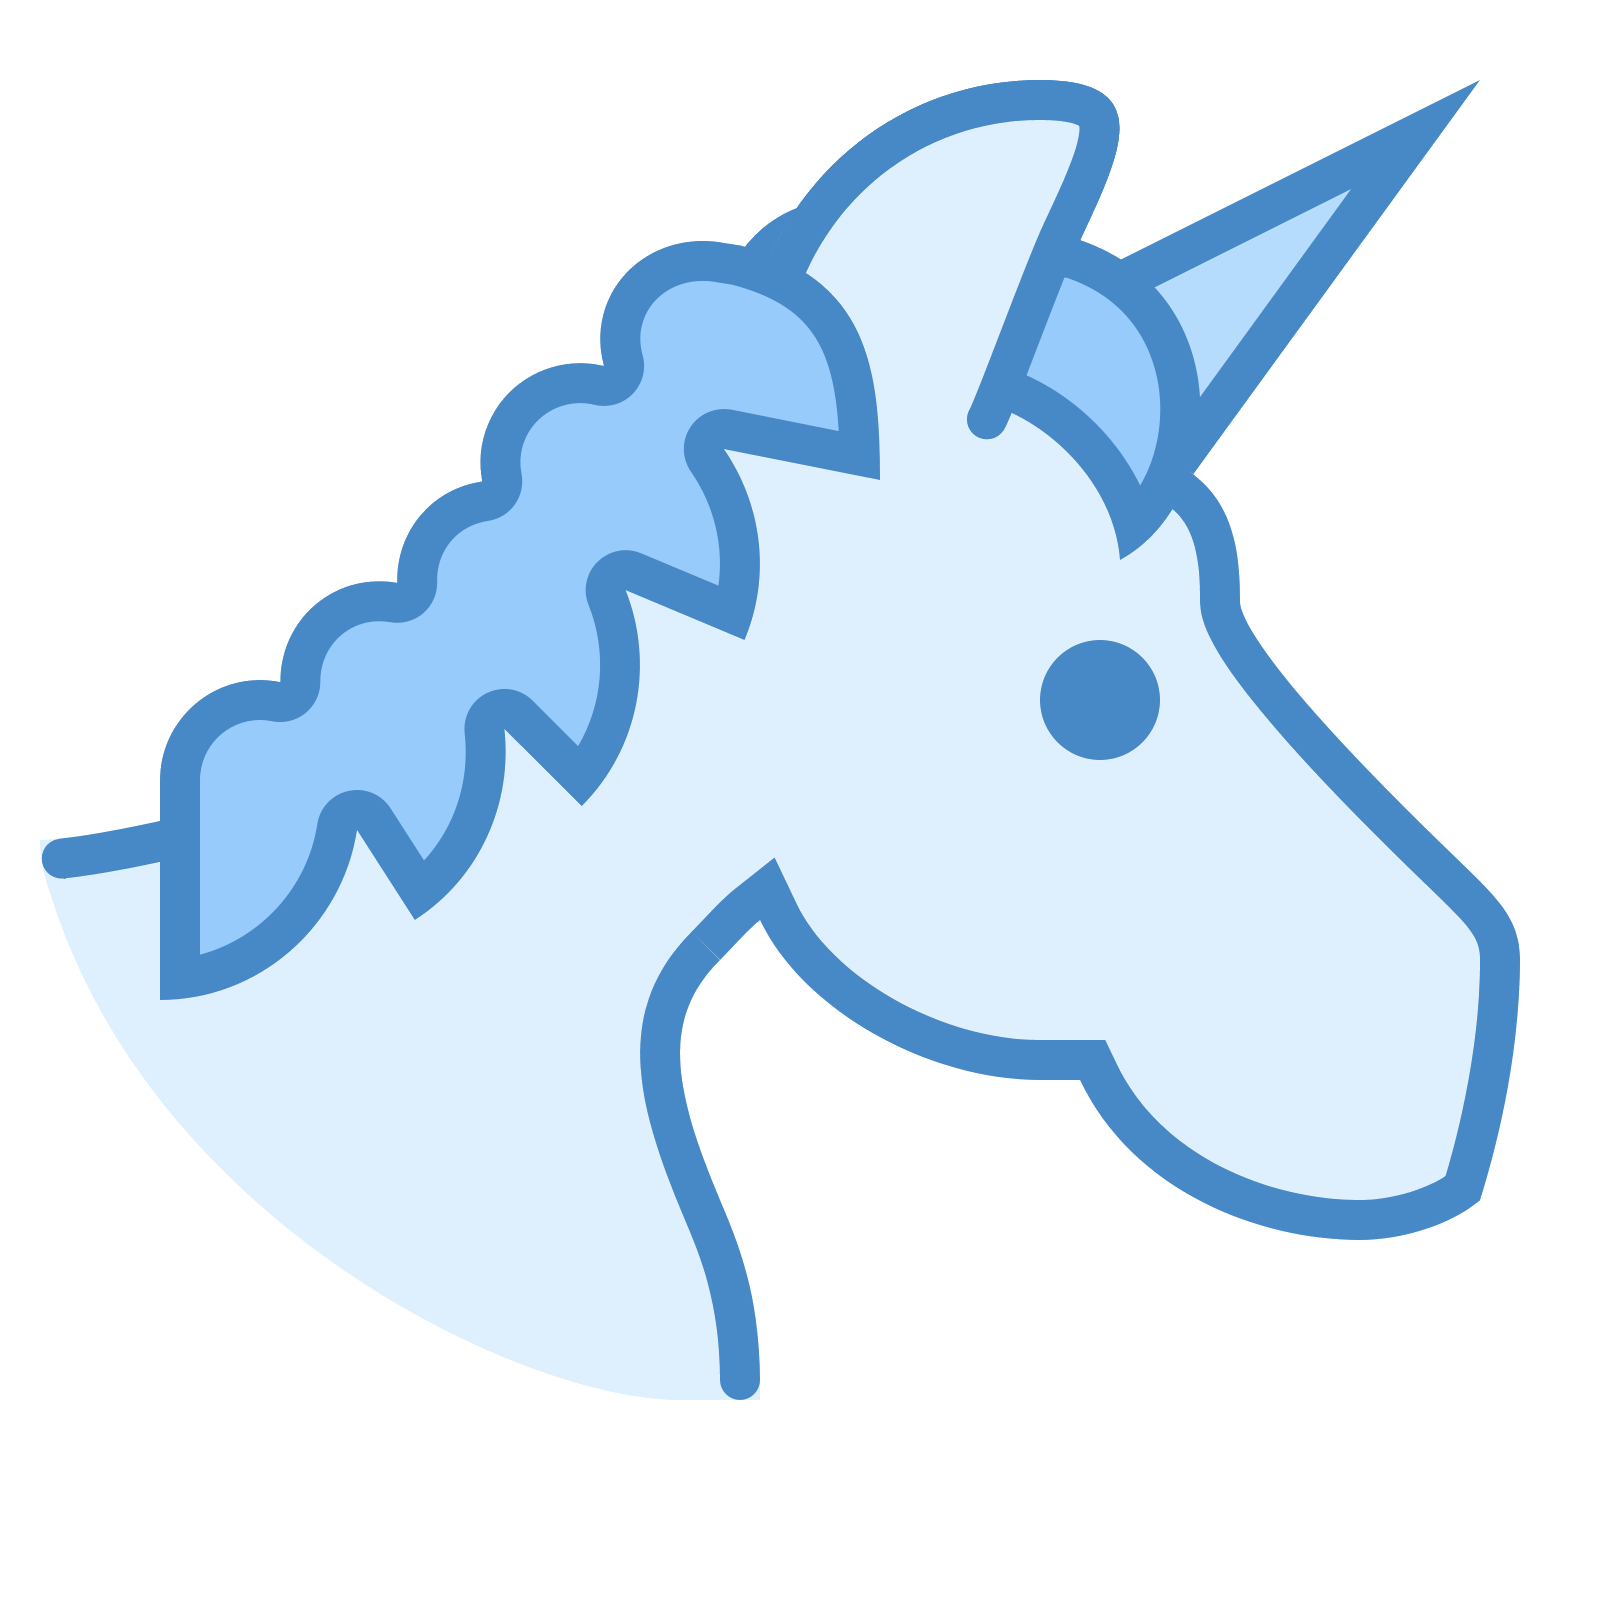 Icon free download png. Clipart unicorn light blue